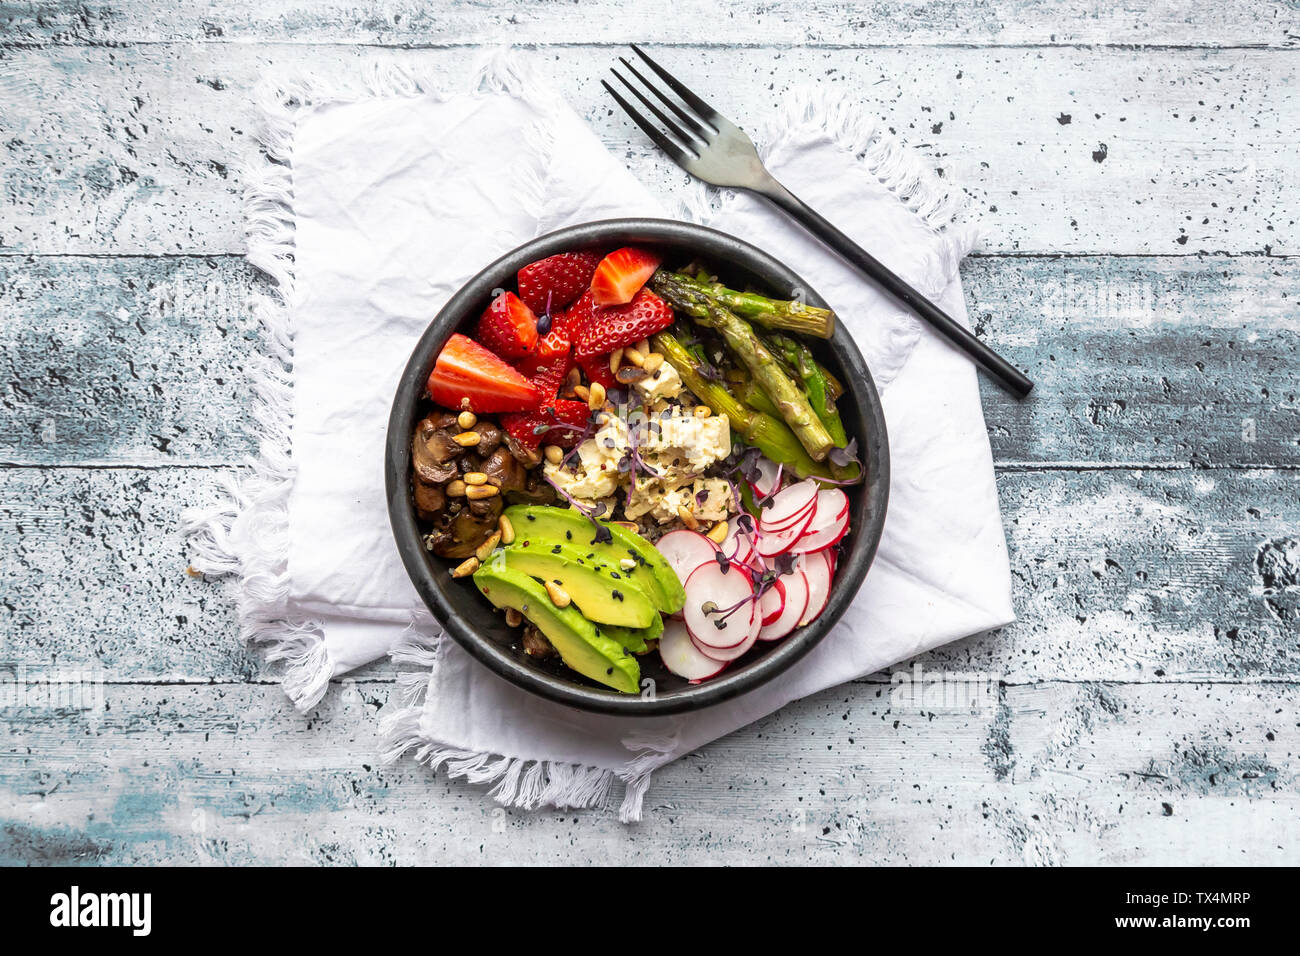 Veggie bowl with quinoa, vegetables, feta, strawberries, avocado, pine nuts and cress - Stock Image